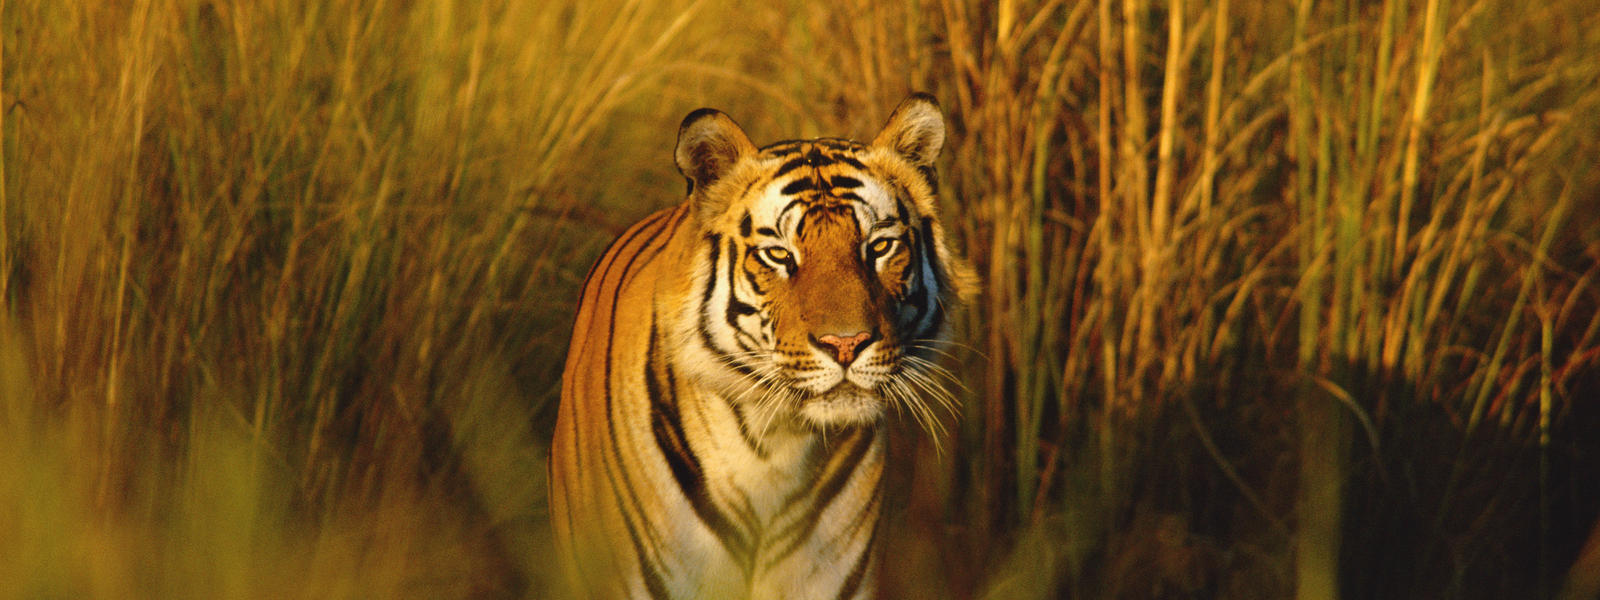 tiger | species | wwf